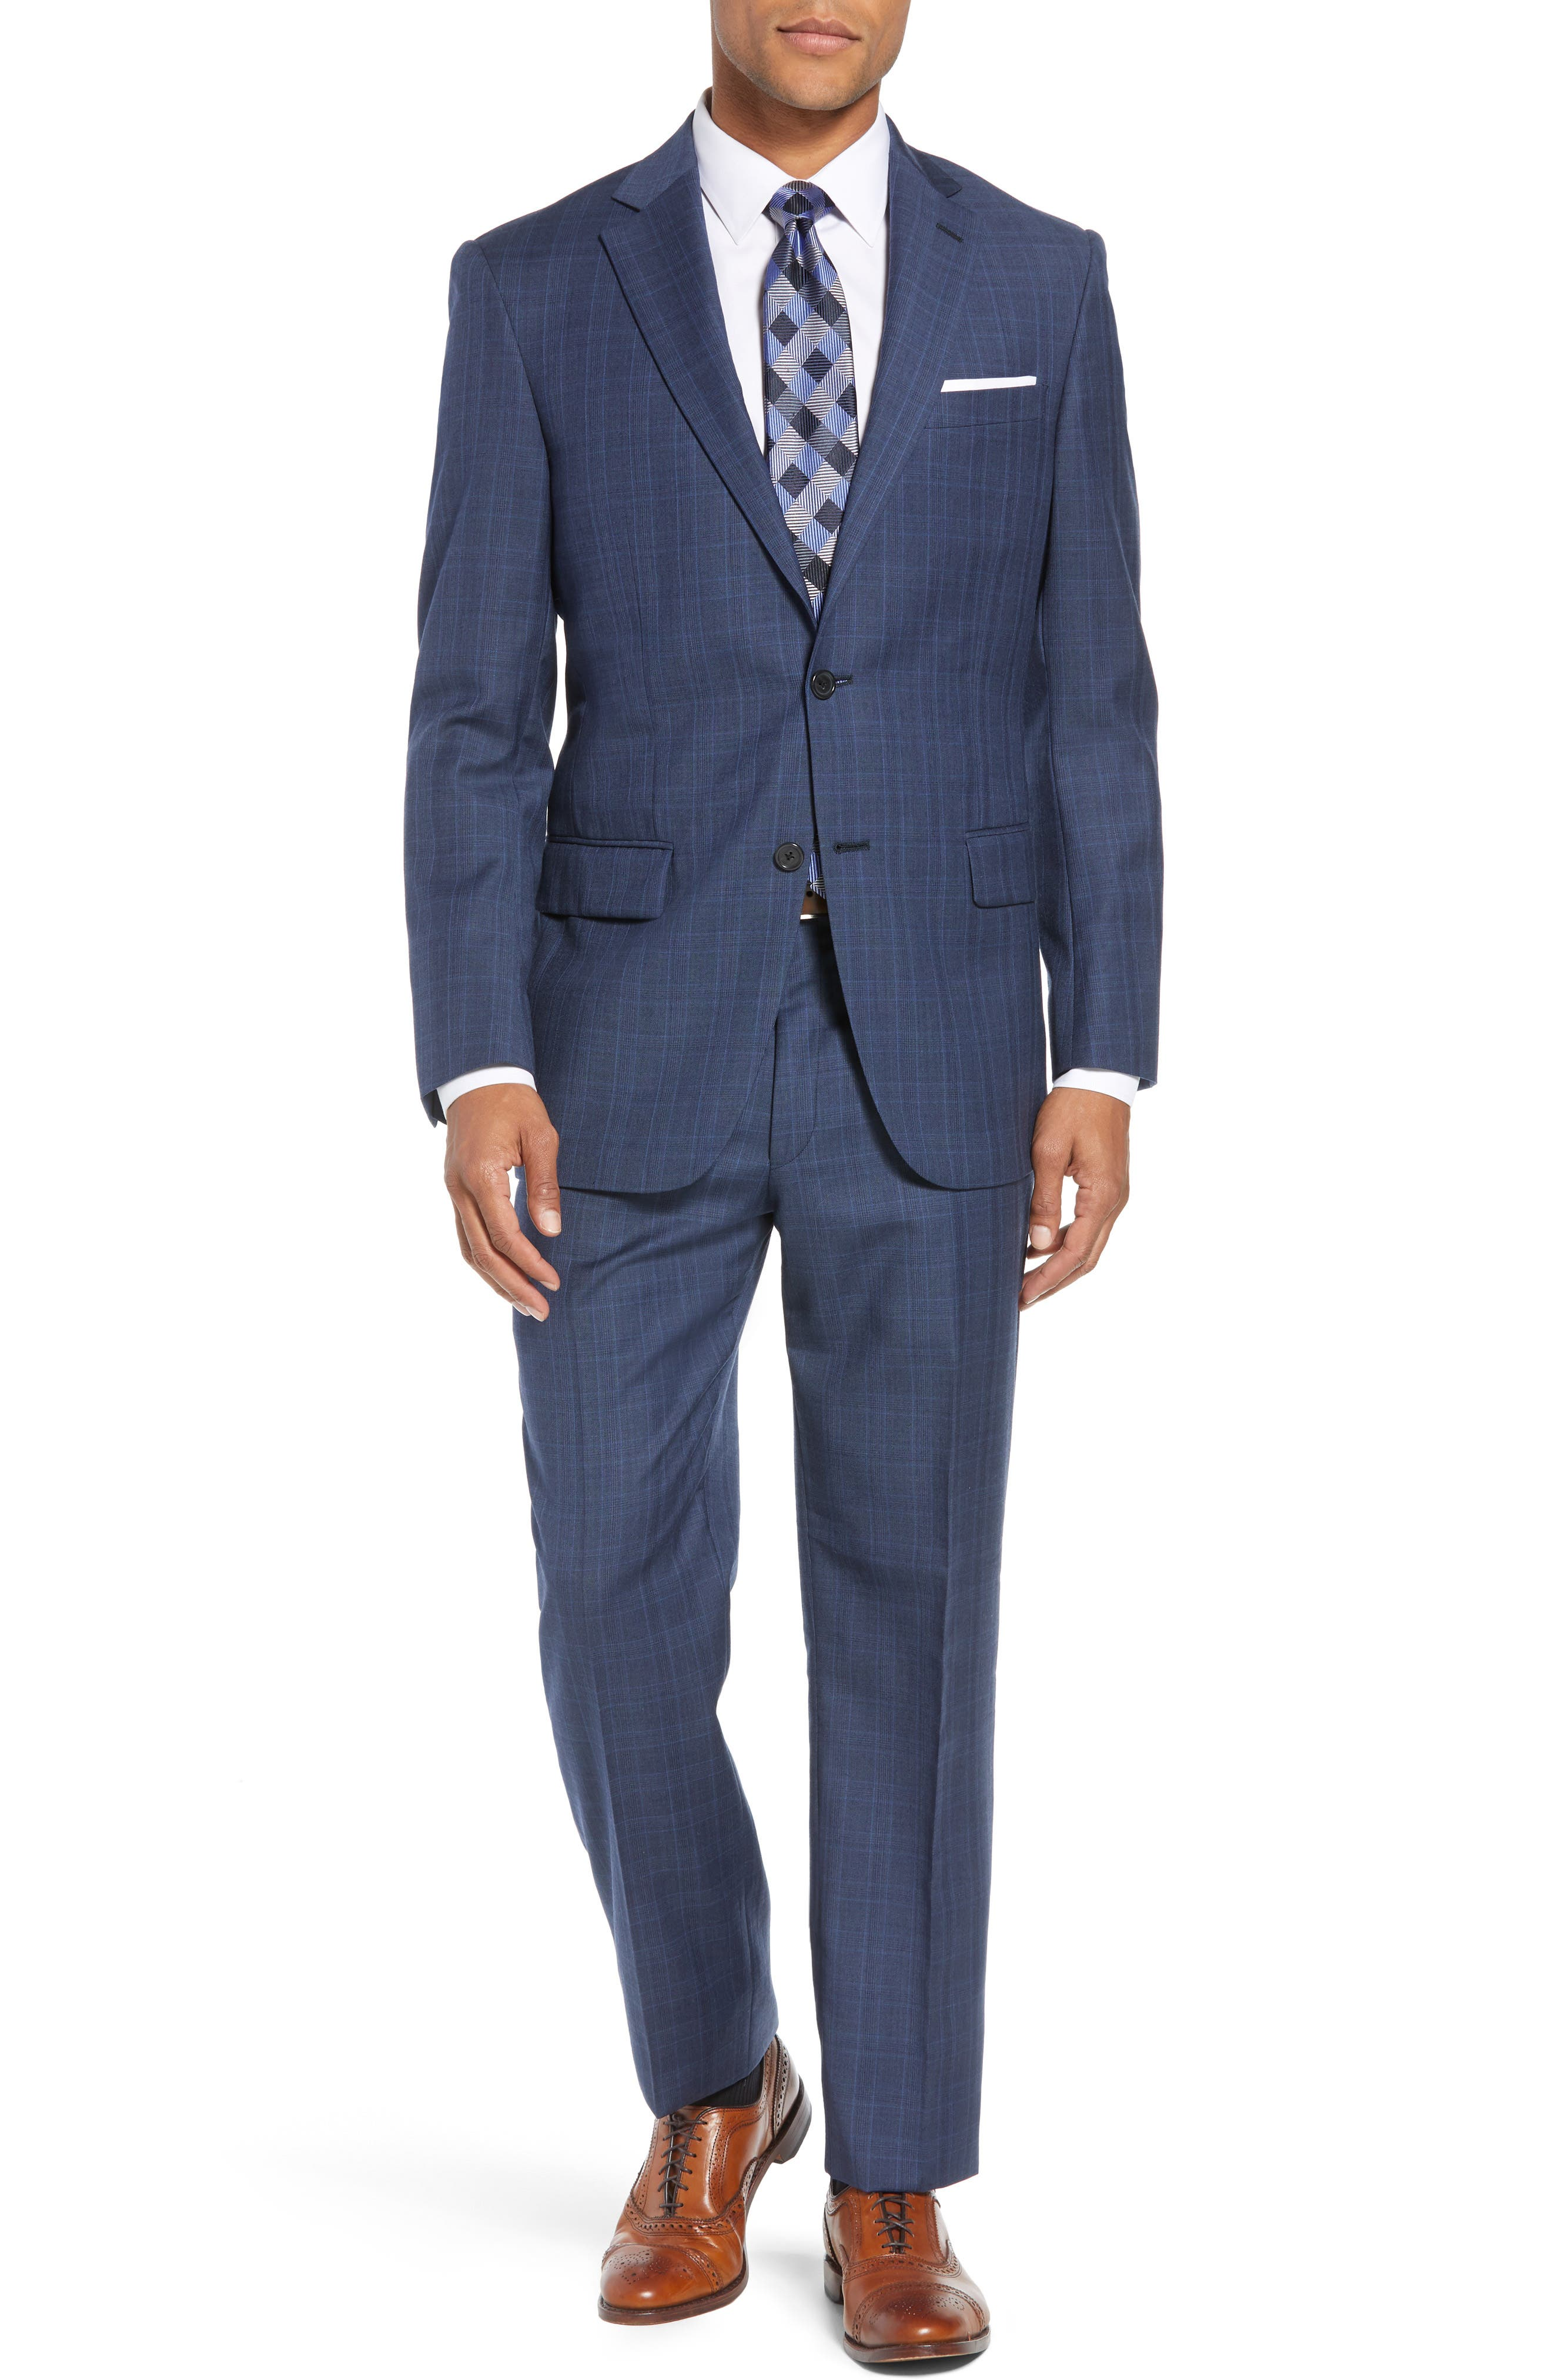 HART SCHAFFNER MARX New York Classic Fit Plaid Wool Suit in Med Blue